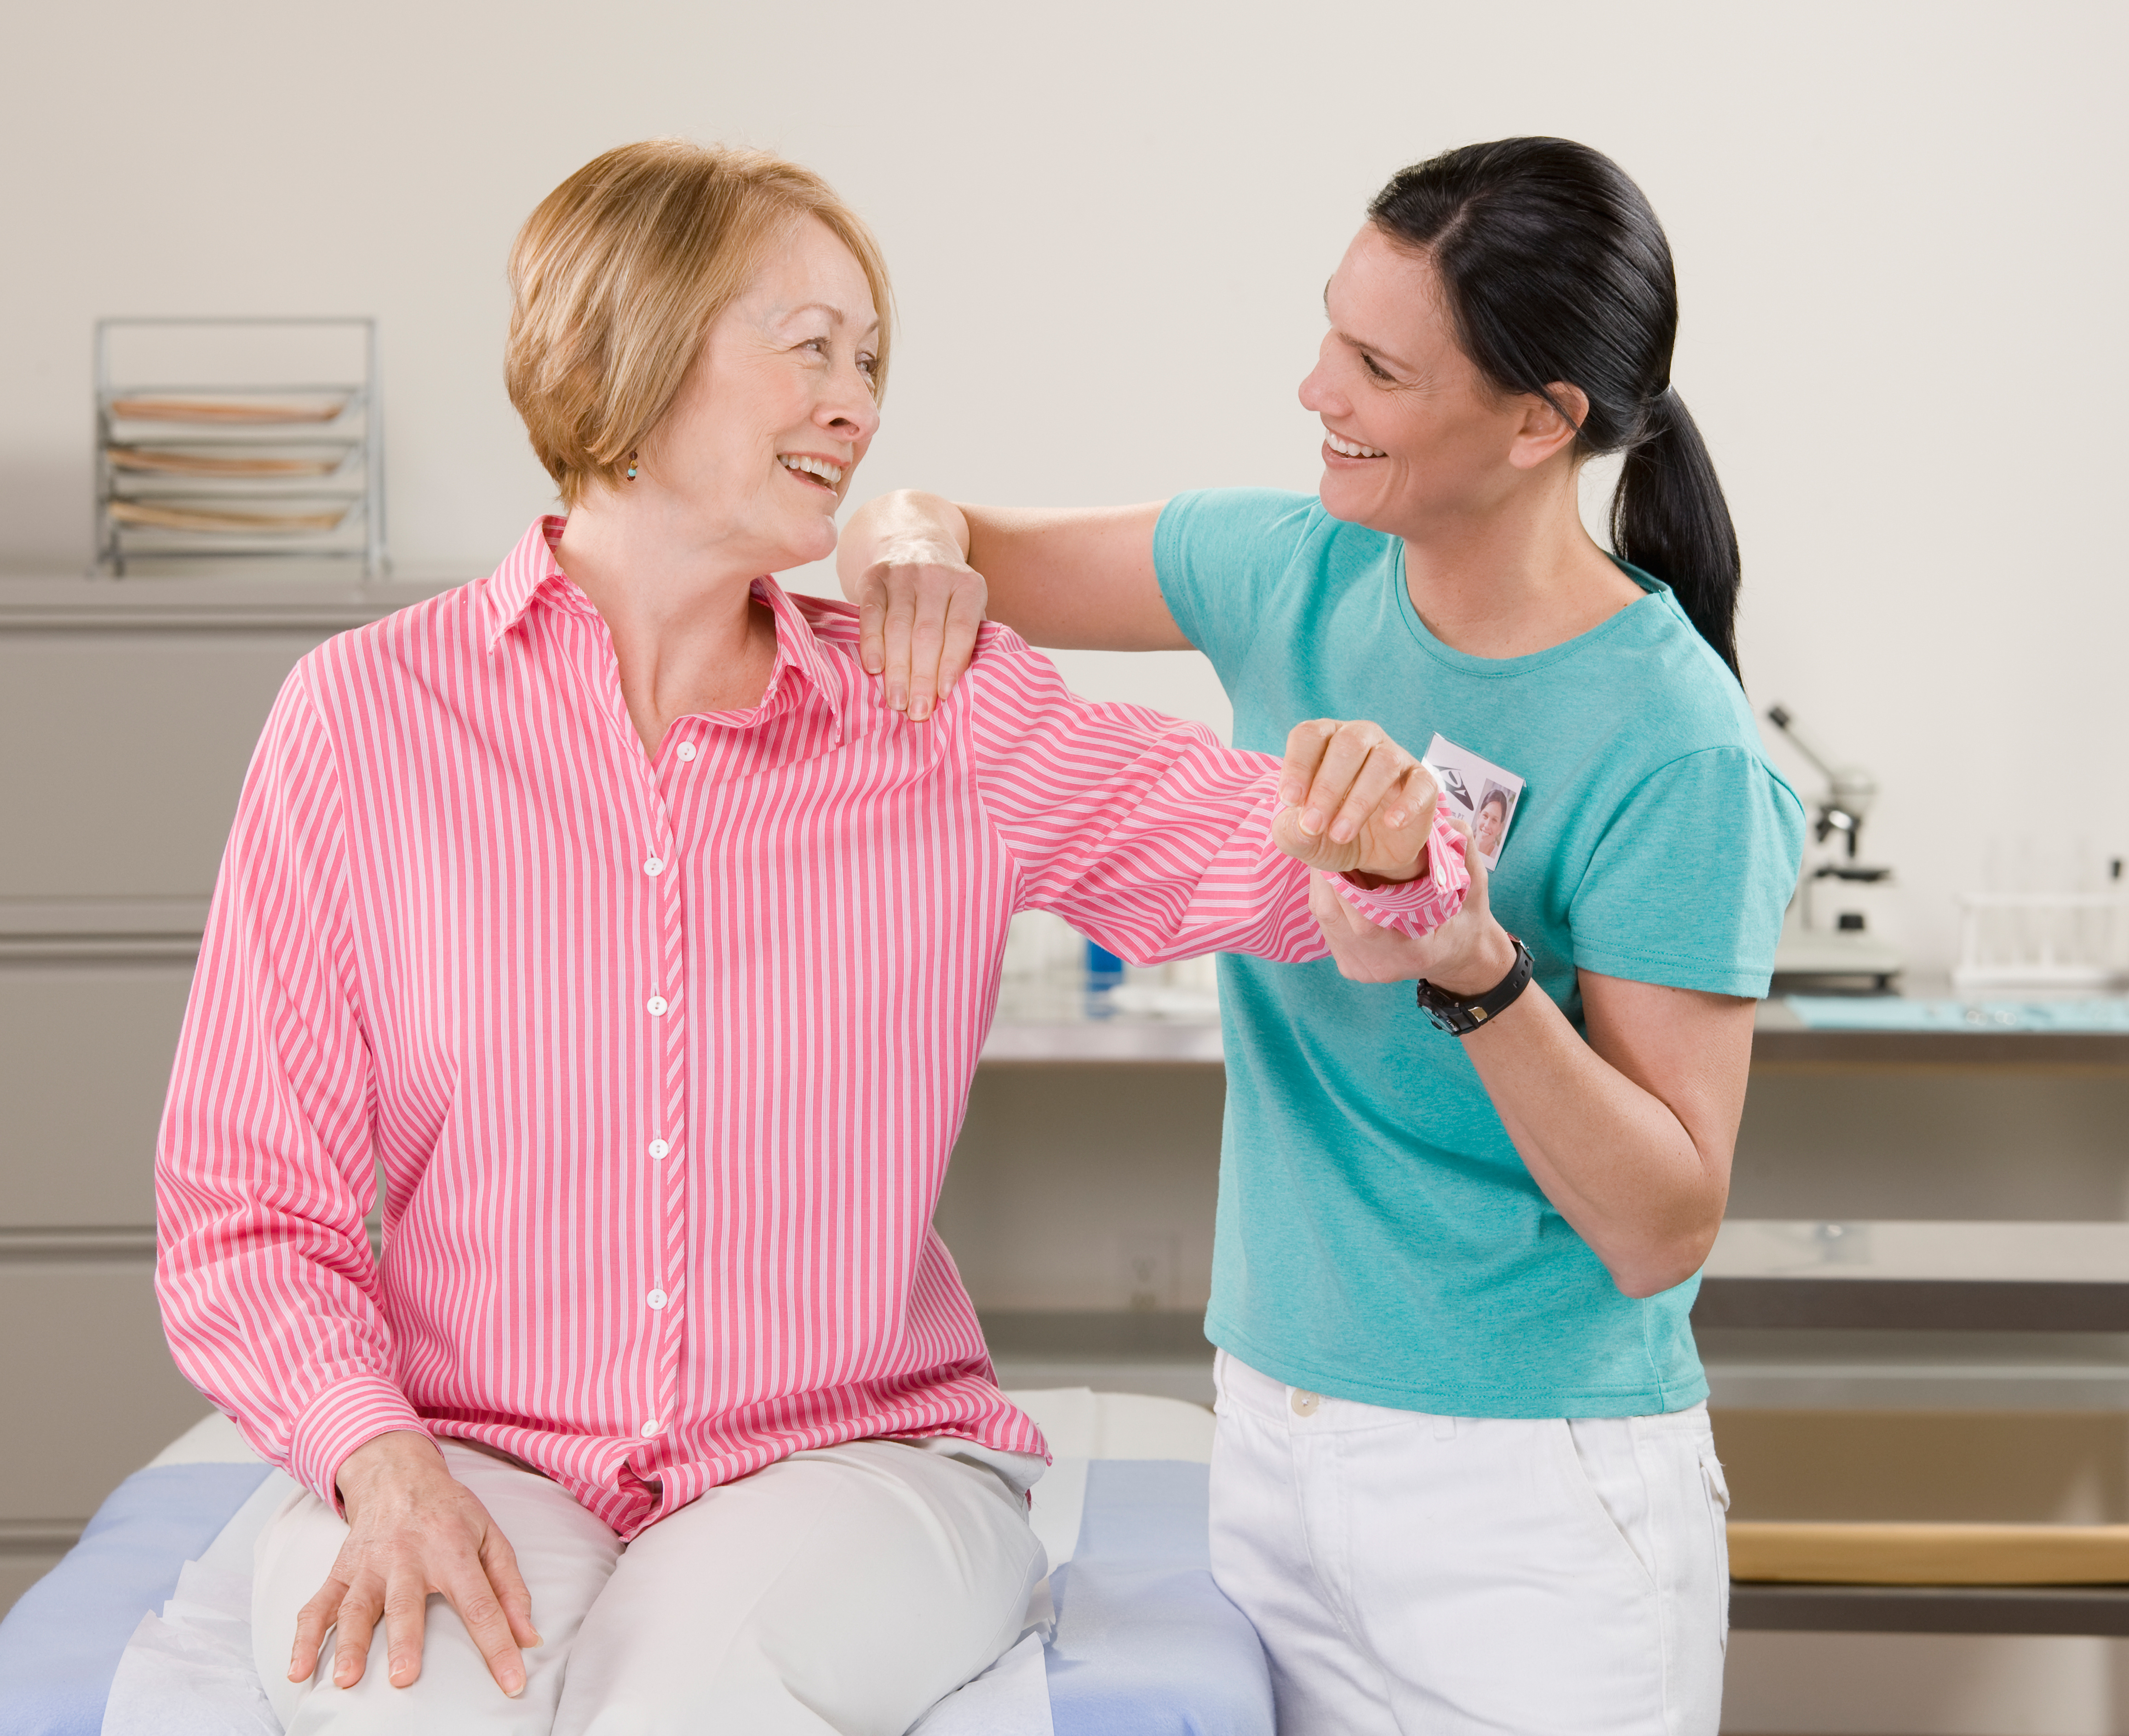 Colorado in job physical therapy - Physical Therapist Checking Senior Woman S Shoulder